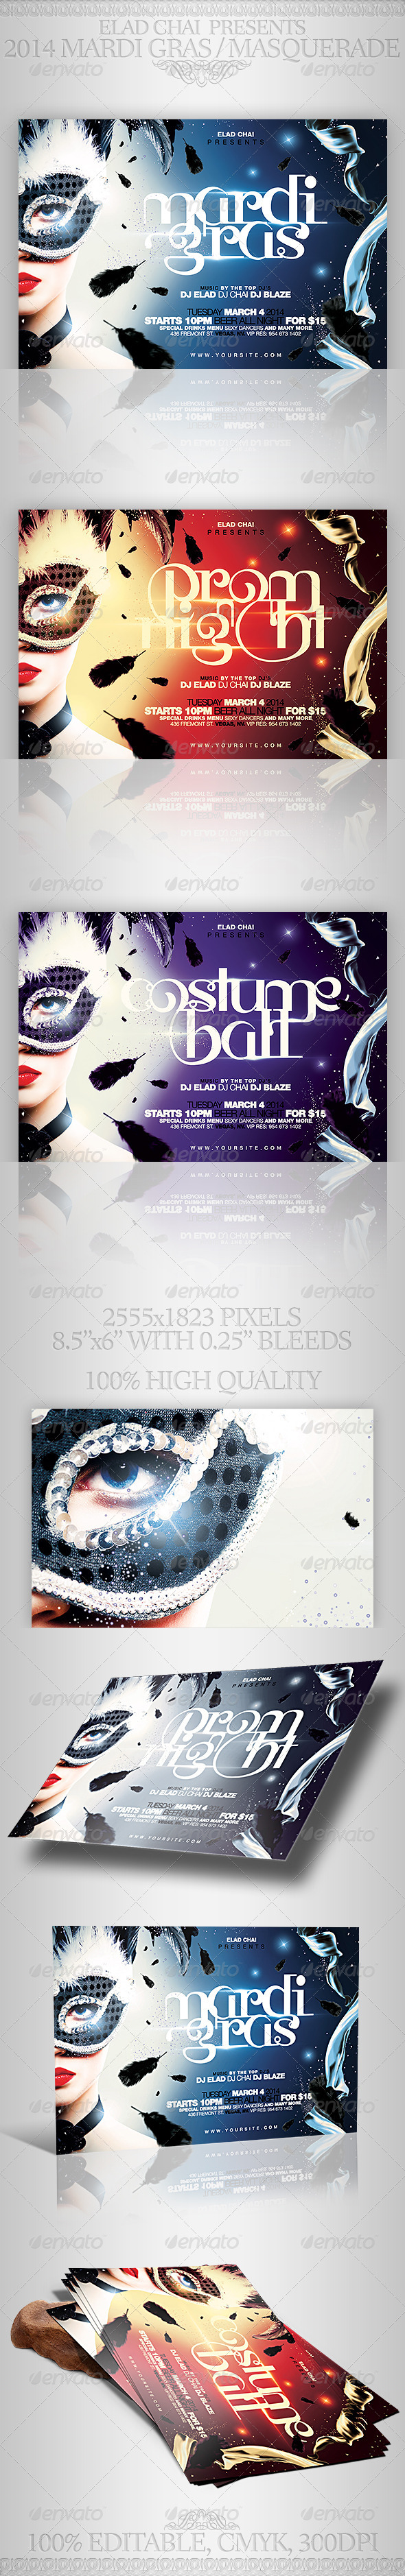 2015 Mardi Gras & Masquerade Flyer Template - Holidays Events